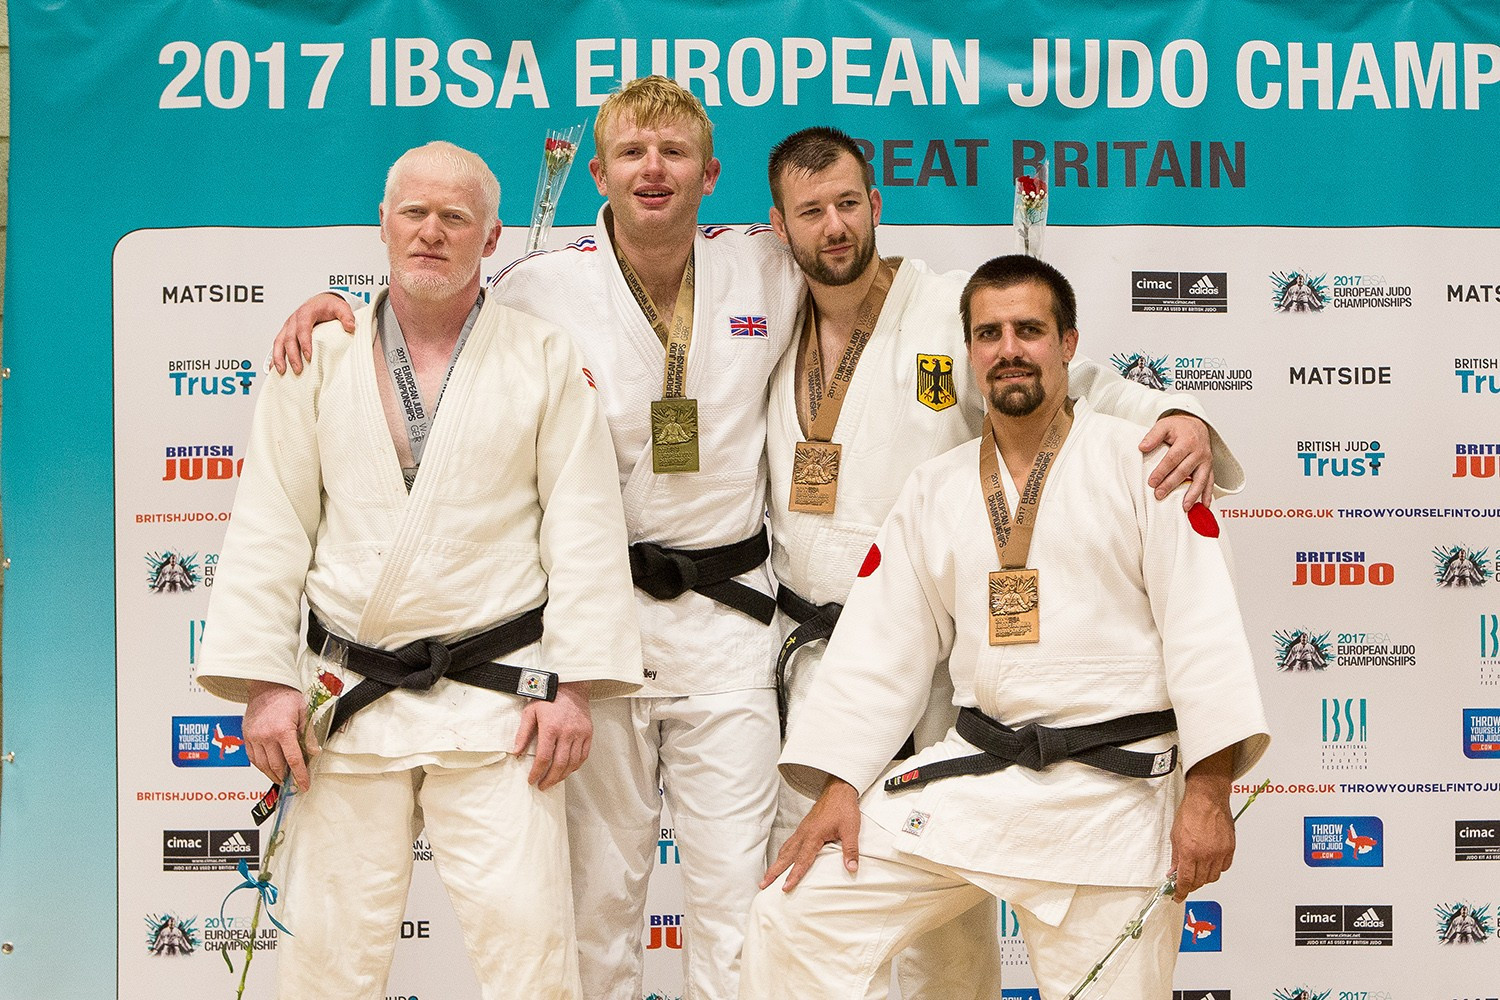 Skelley claims memorable win on home soil at IBSA European Judo Championships